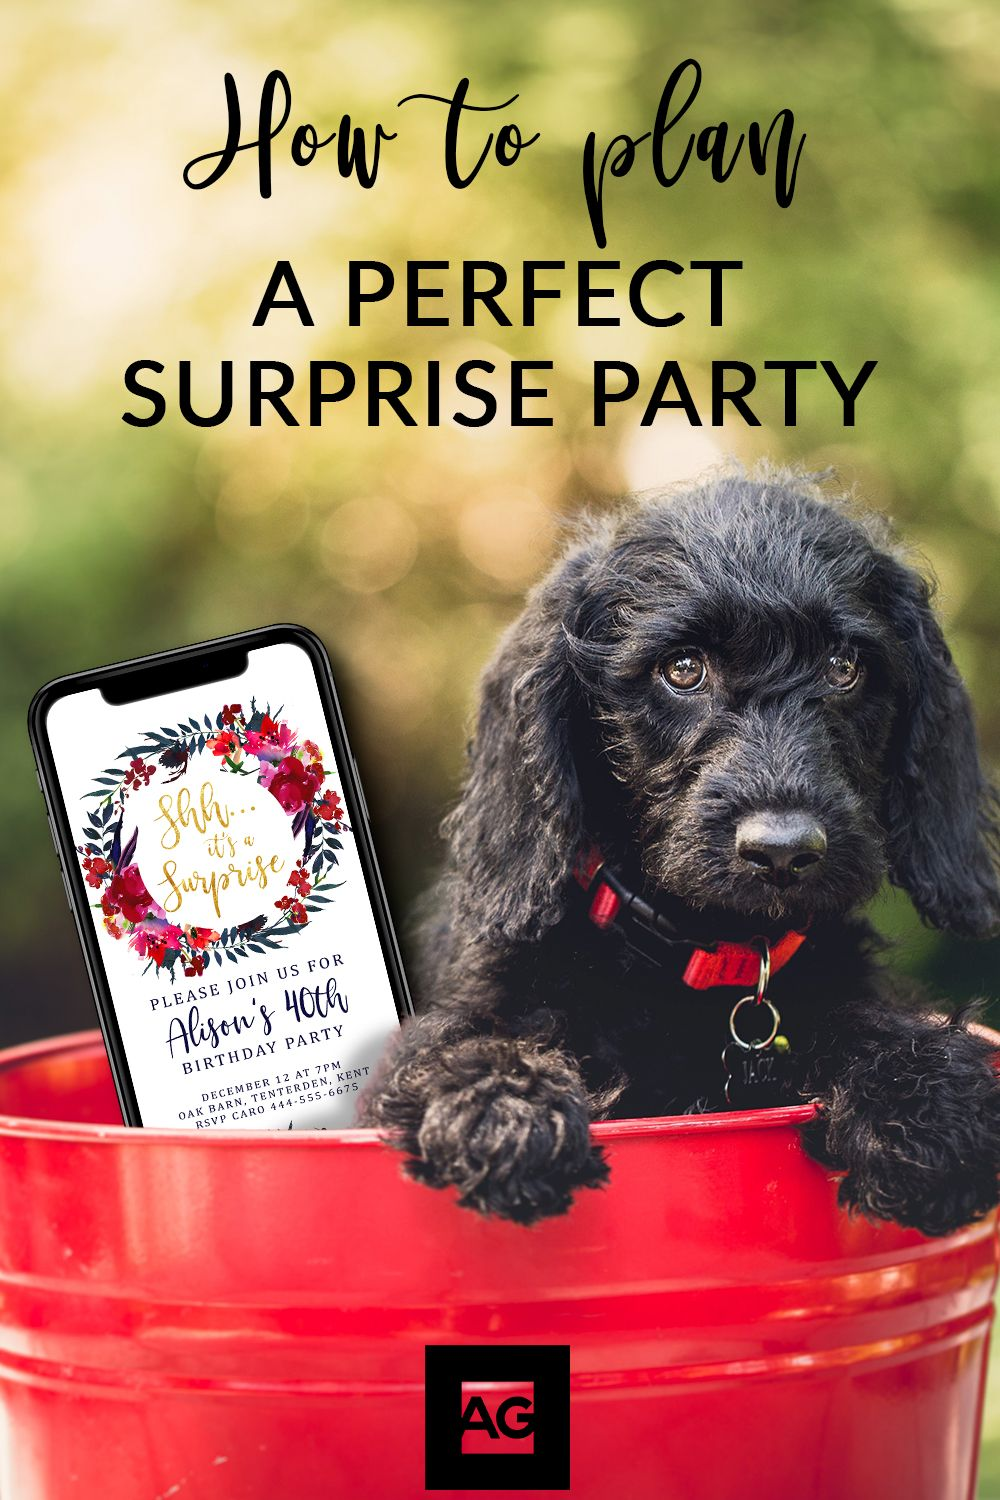 Electronic Surprise Party Invitations Available A Quick Effortless Way To Share Your Secret Celebration Simply Edit And Then Invites On Phone